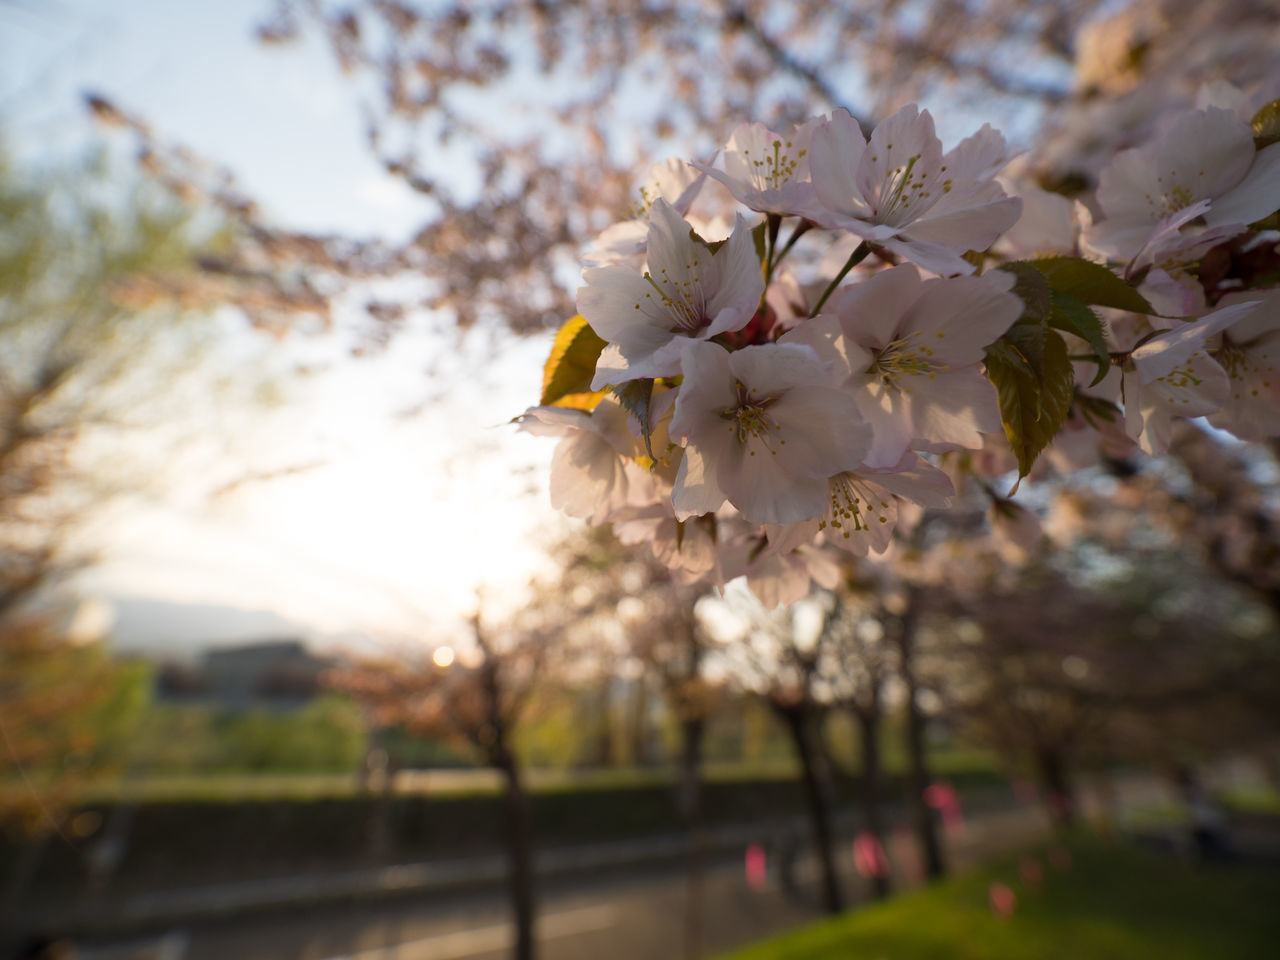 flower, tree, blossom, beauty in nature, cherry blossom, fragility, growth, springtime, nature, apple blossom, white color, freshness, branch, apple tree, cherry tree, orchard, botany, petal, flower head, no people, twig, outdoors, day, focus on foreground, close-up, blooming, plum blossom, sky